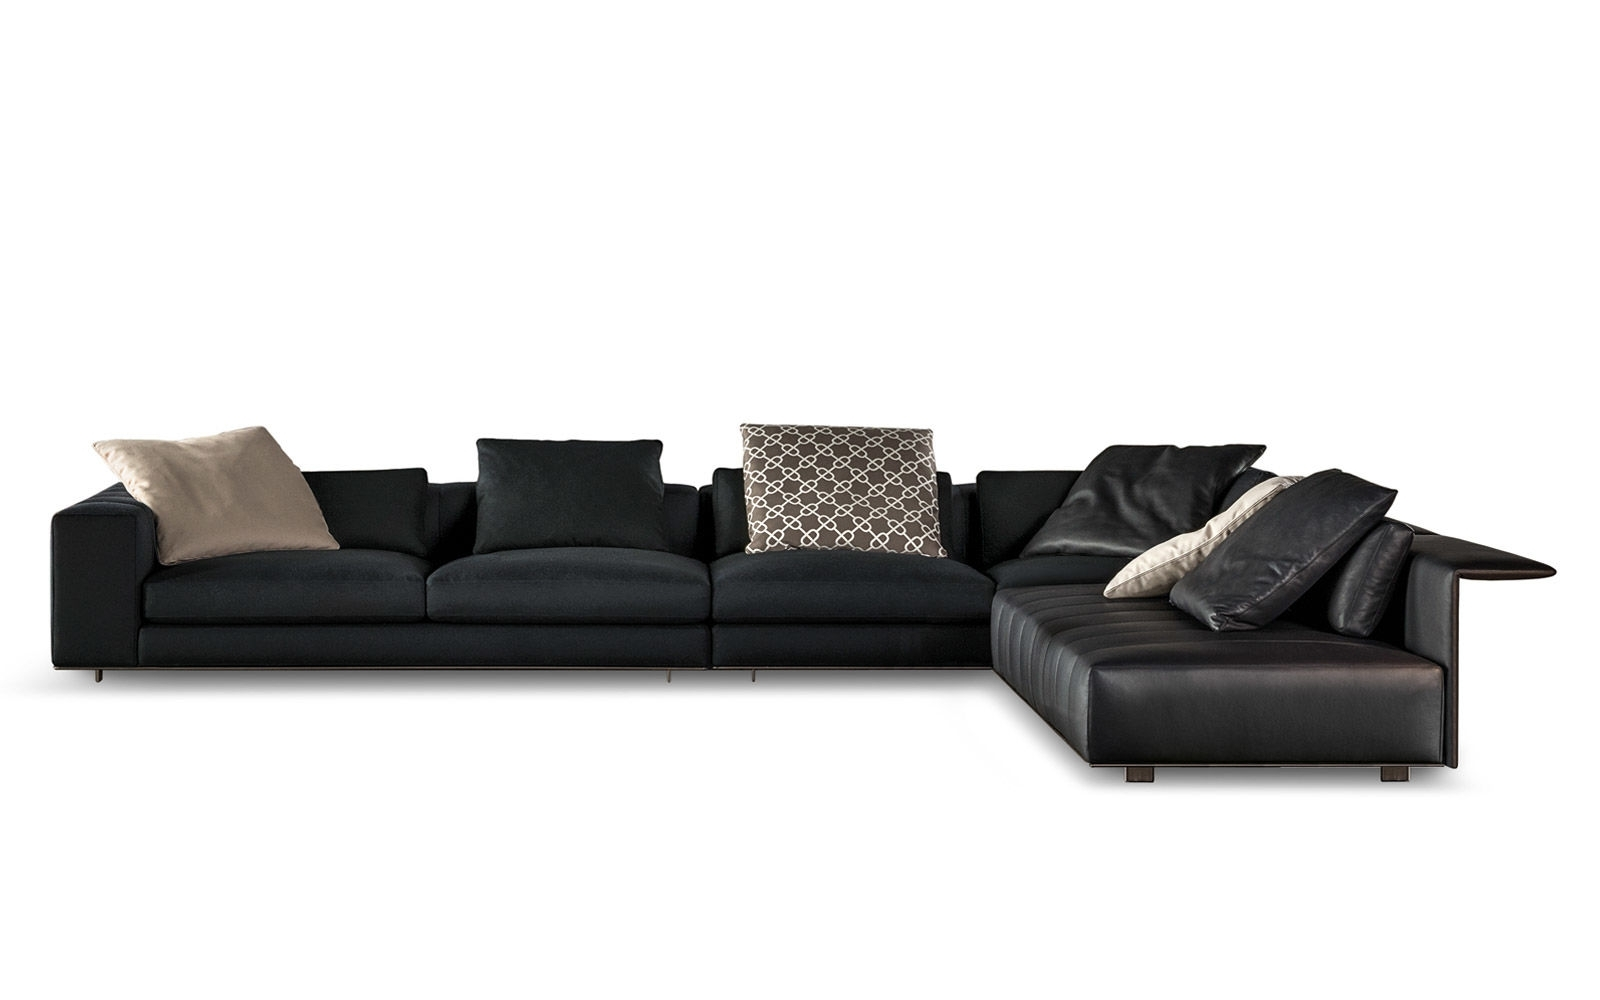 Freeman Seating System | Sofas – En Intended For Calder Grey 6 Piece Manual Reclining Sectionals (Image 12 of 25)